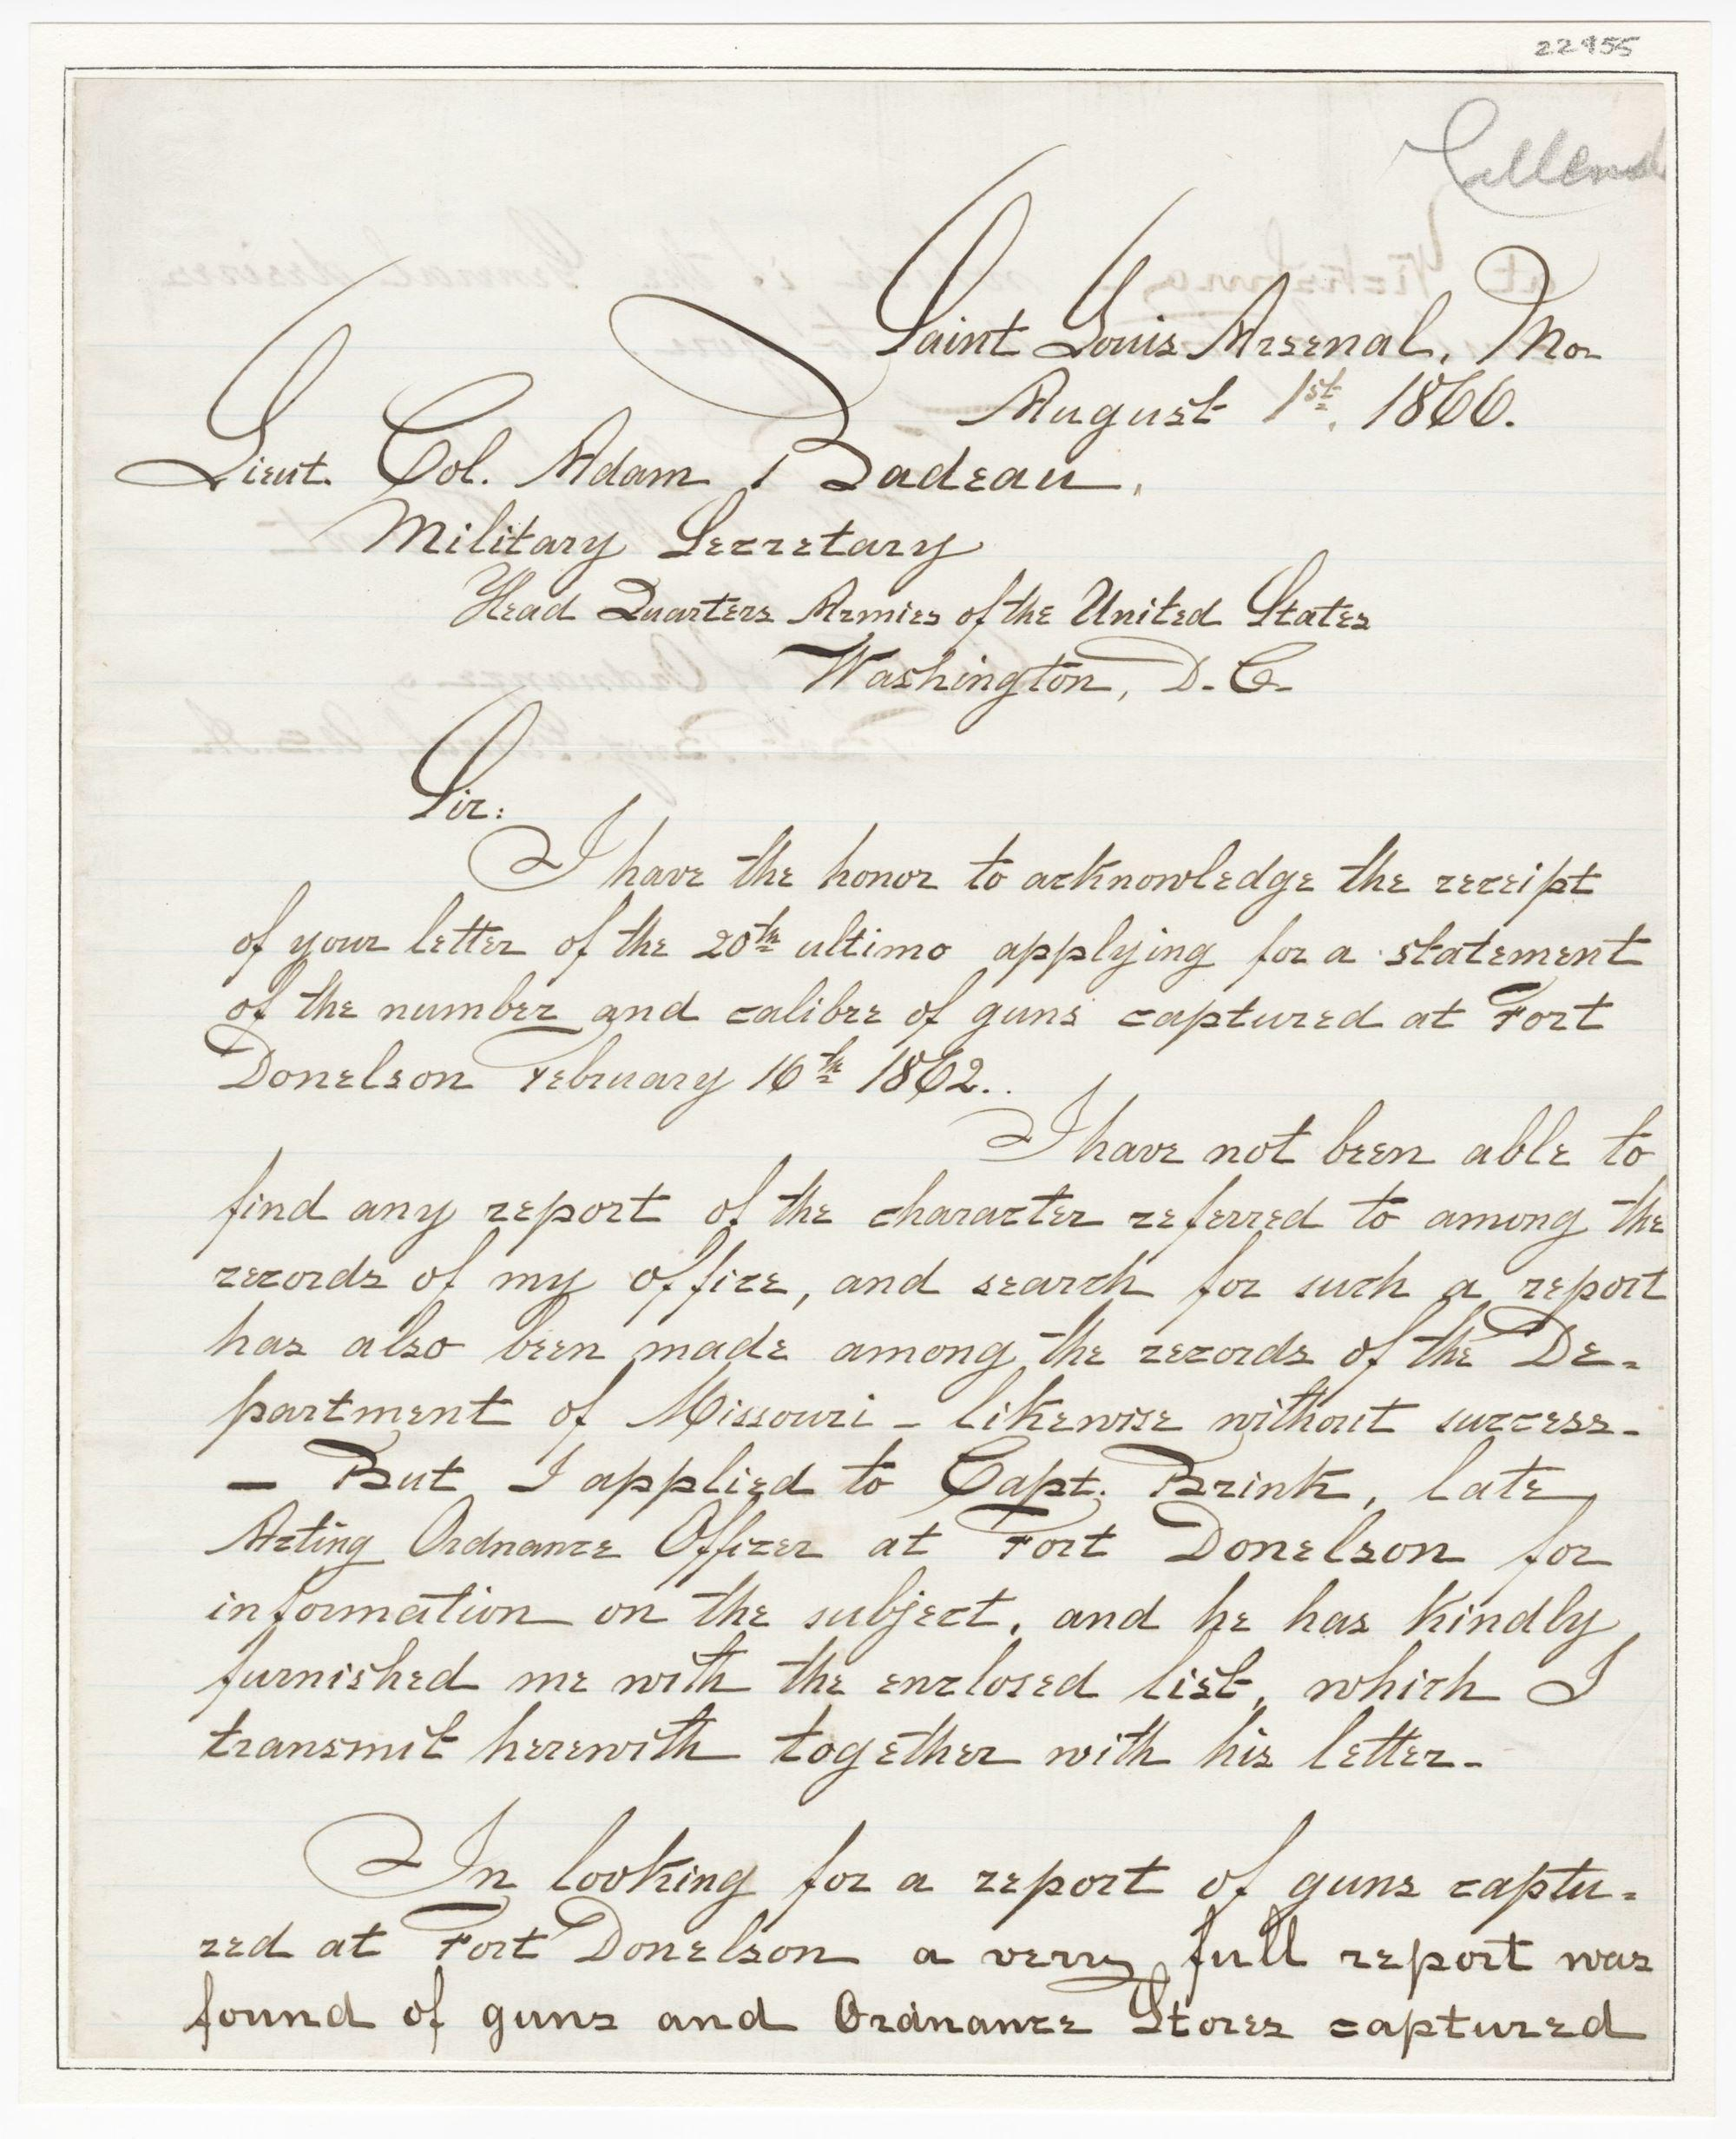 Responding to Grant's Postwar Request for a Report of Guns Captured at Fort Donelson, His First Success